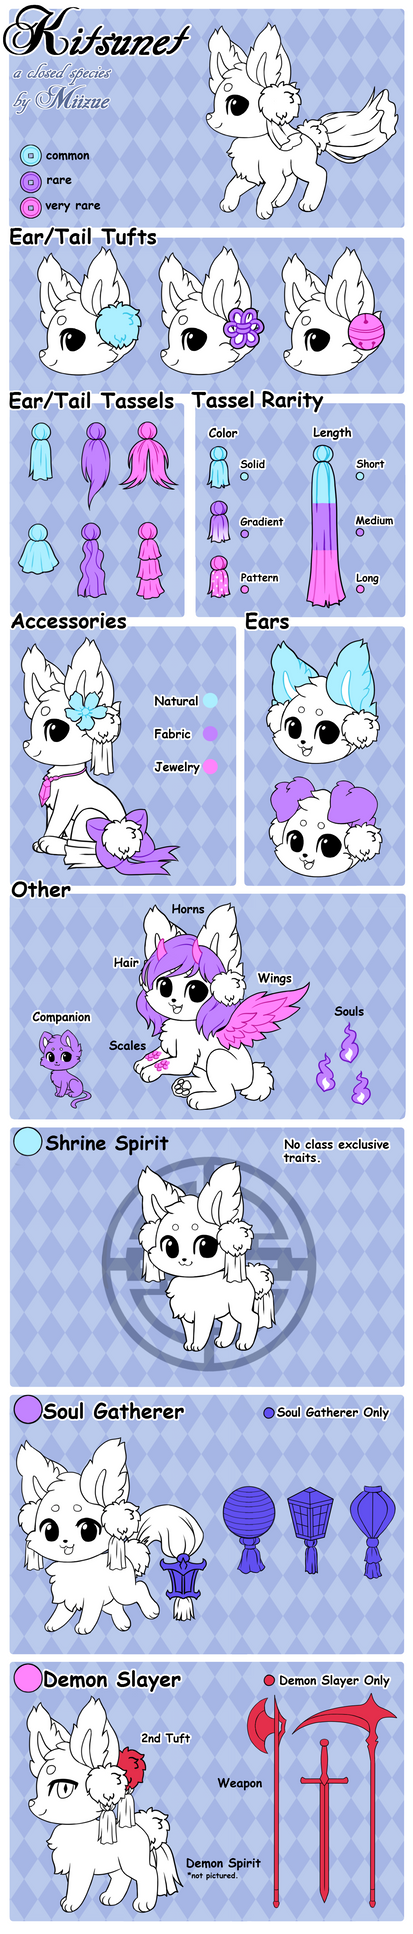 Kitsunet Guide(Closed Species) by Miizue